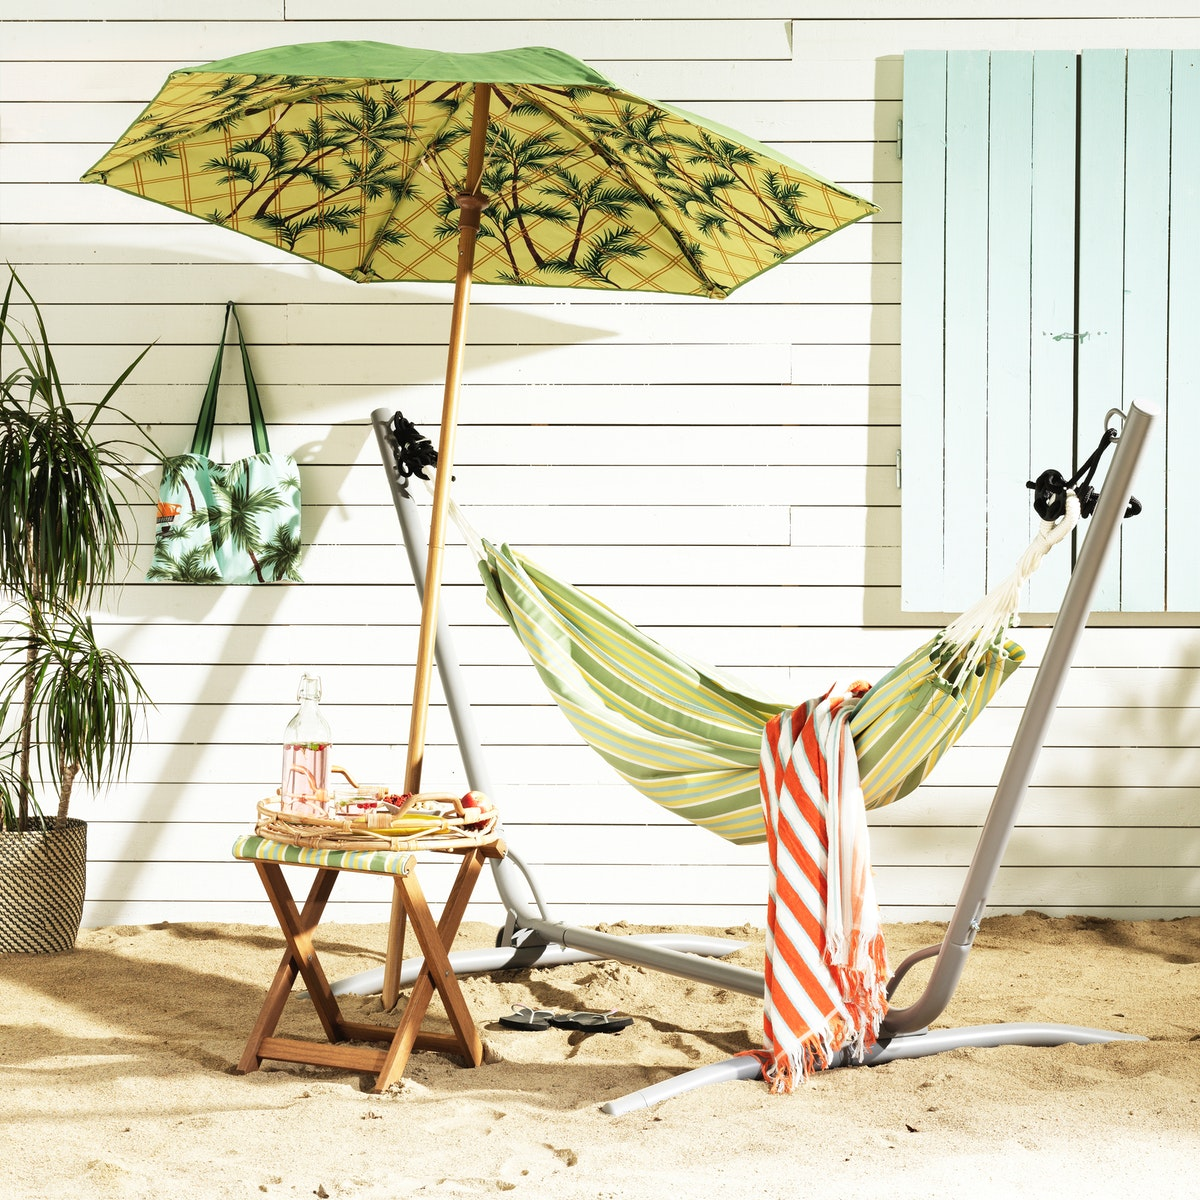 An outdoor space on the beach with the SOLBLEKT collection umbrella, stool and hammock set up.